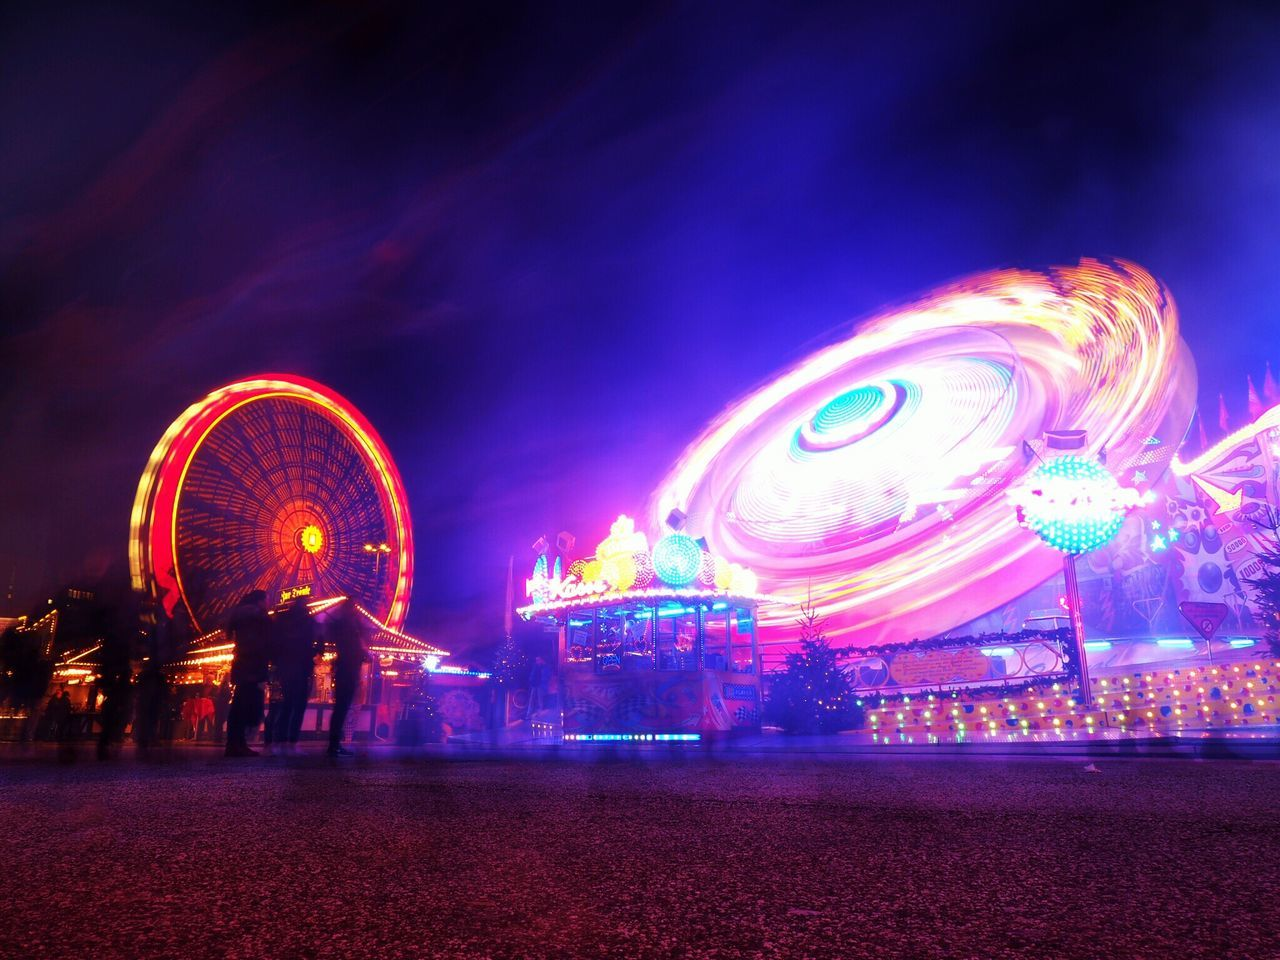 amusement park, amusement park ride, arts culture and entertainment, illuminated, night, motion, sky, long exposure, ferris wheel, architecture, spinning, multi colored, blurred motion, nature, leisure activity, enjoyment, built structure, outdoors, group of people, cloud - sky, nightlife